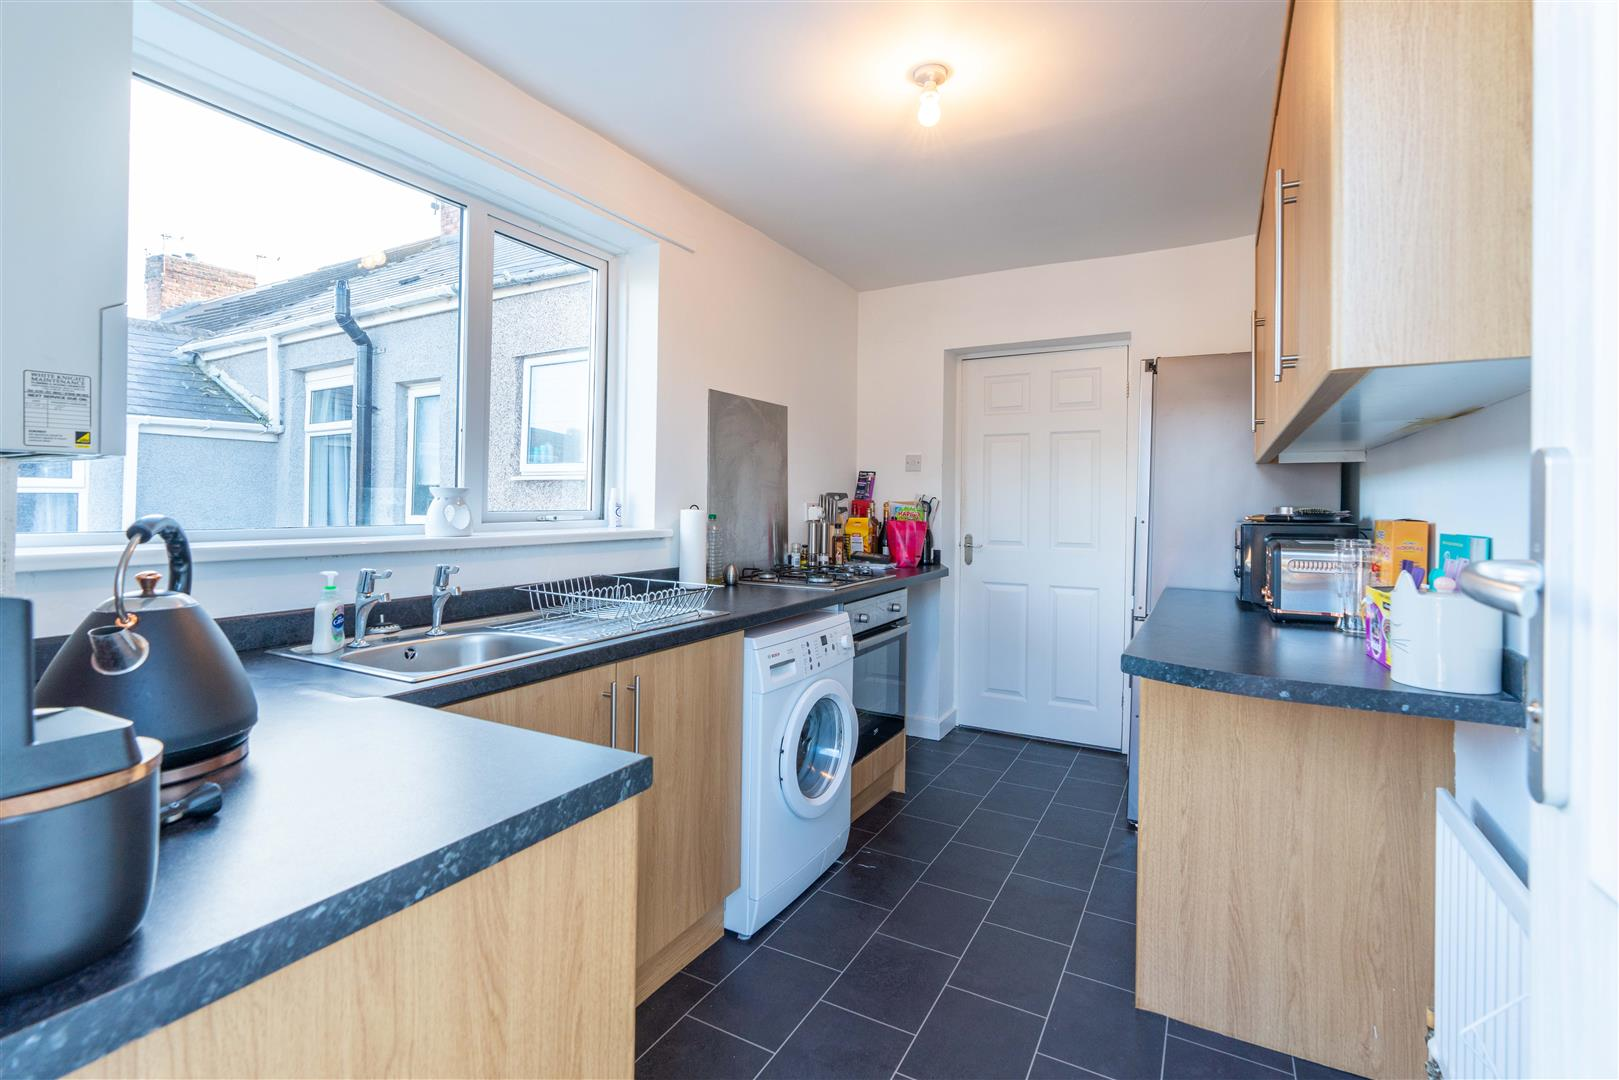 2 bed flat to rent in Astley Road, Seaton Delaval, NE25